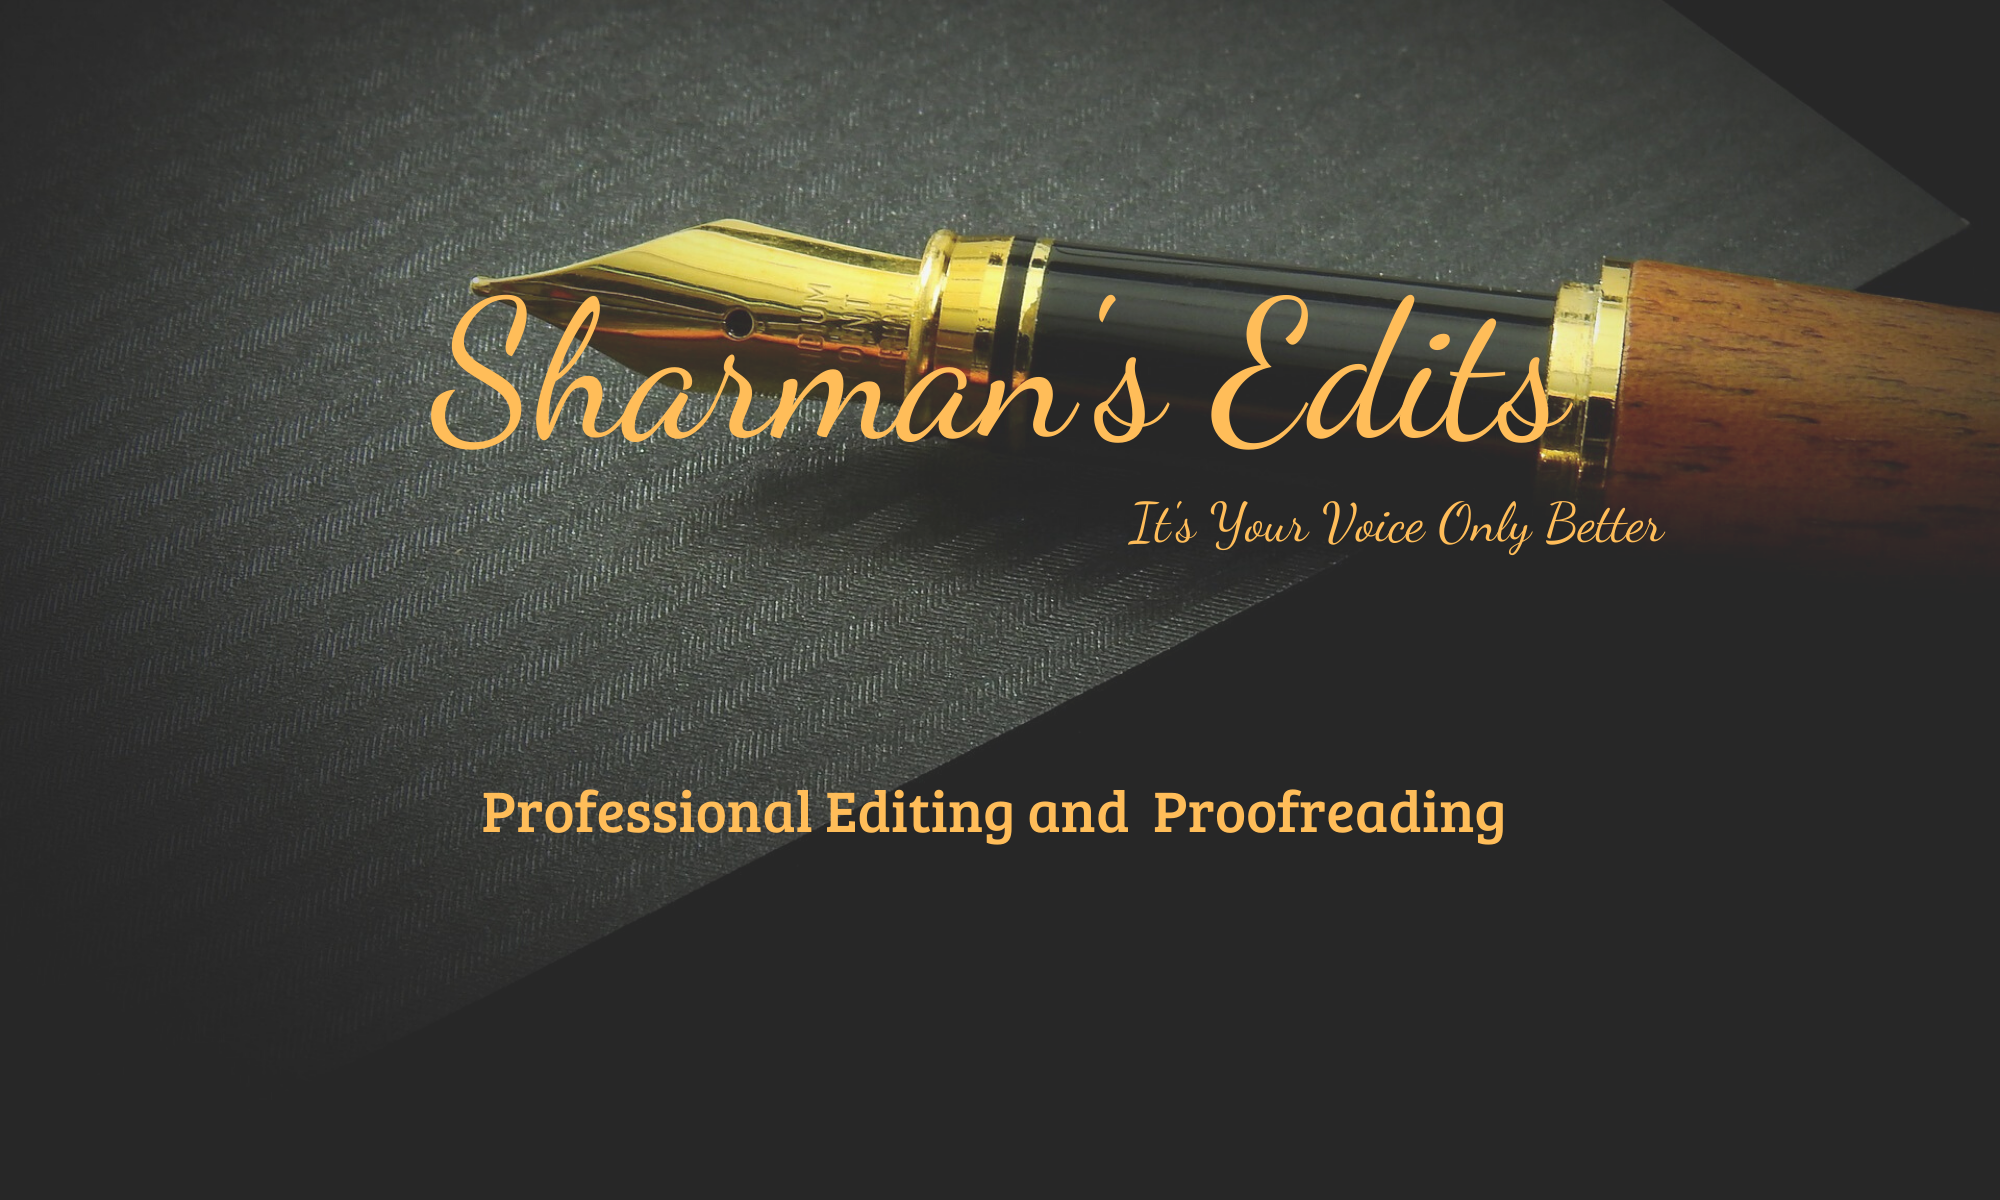 Sharman's Edits: It's Your Voice Only Better!